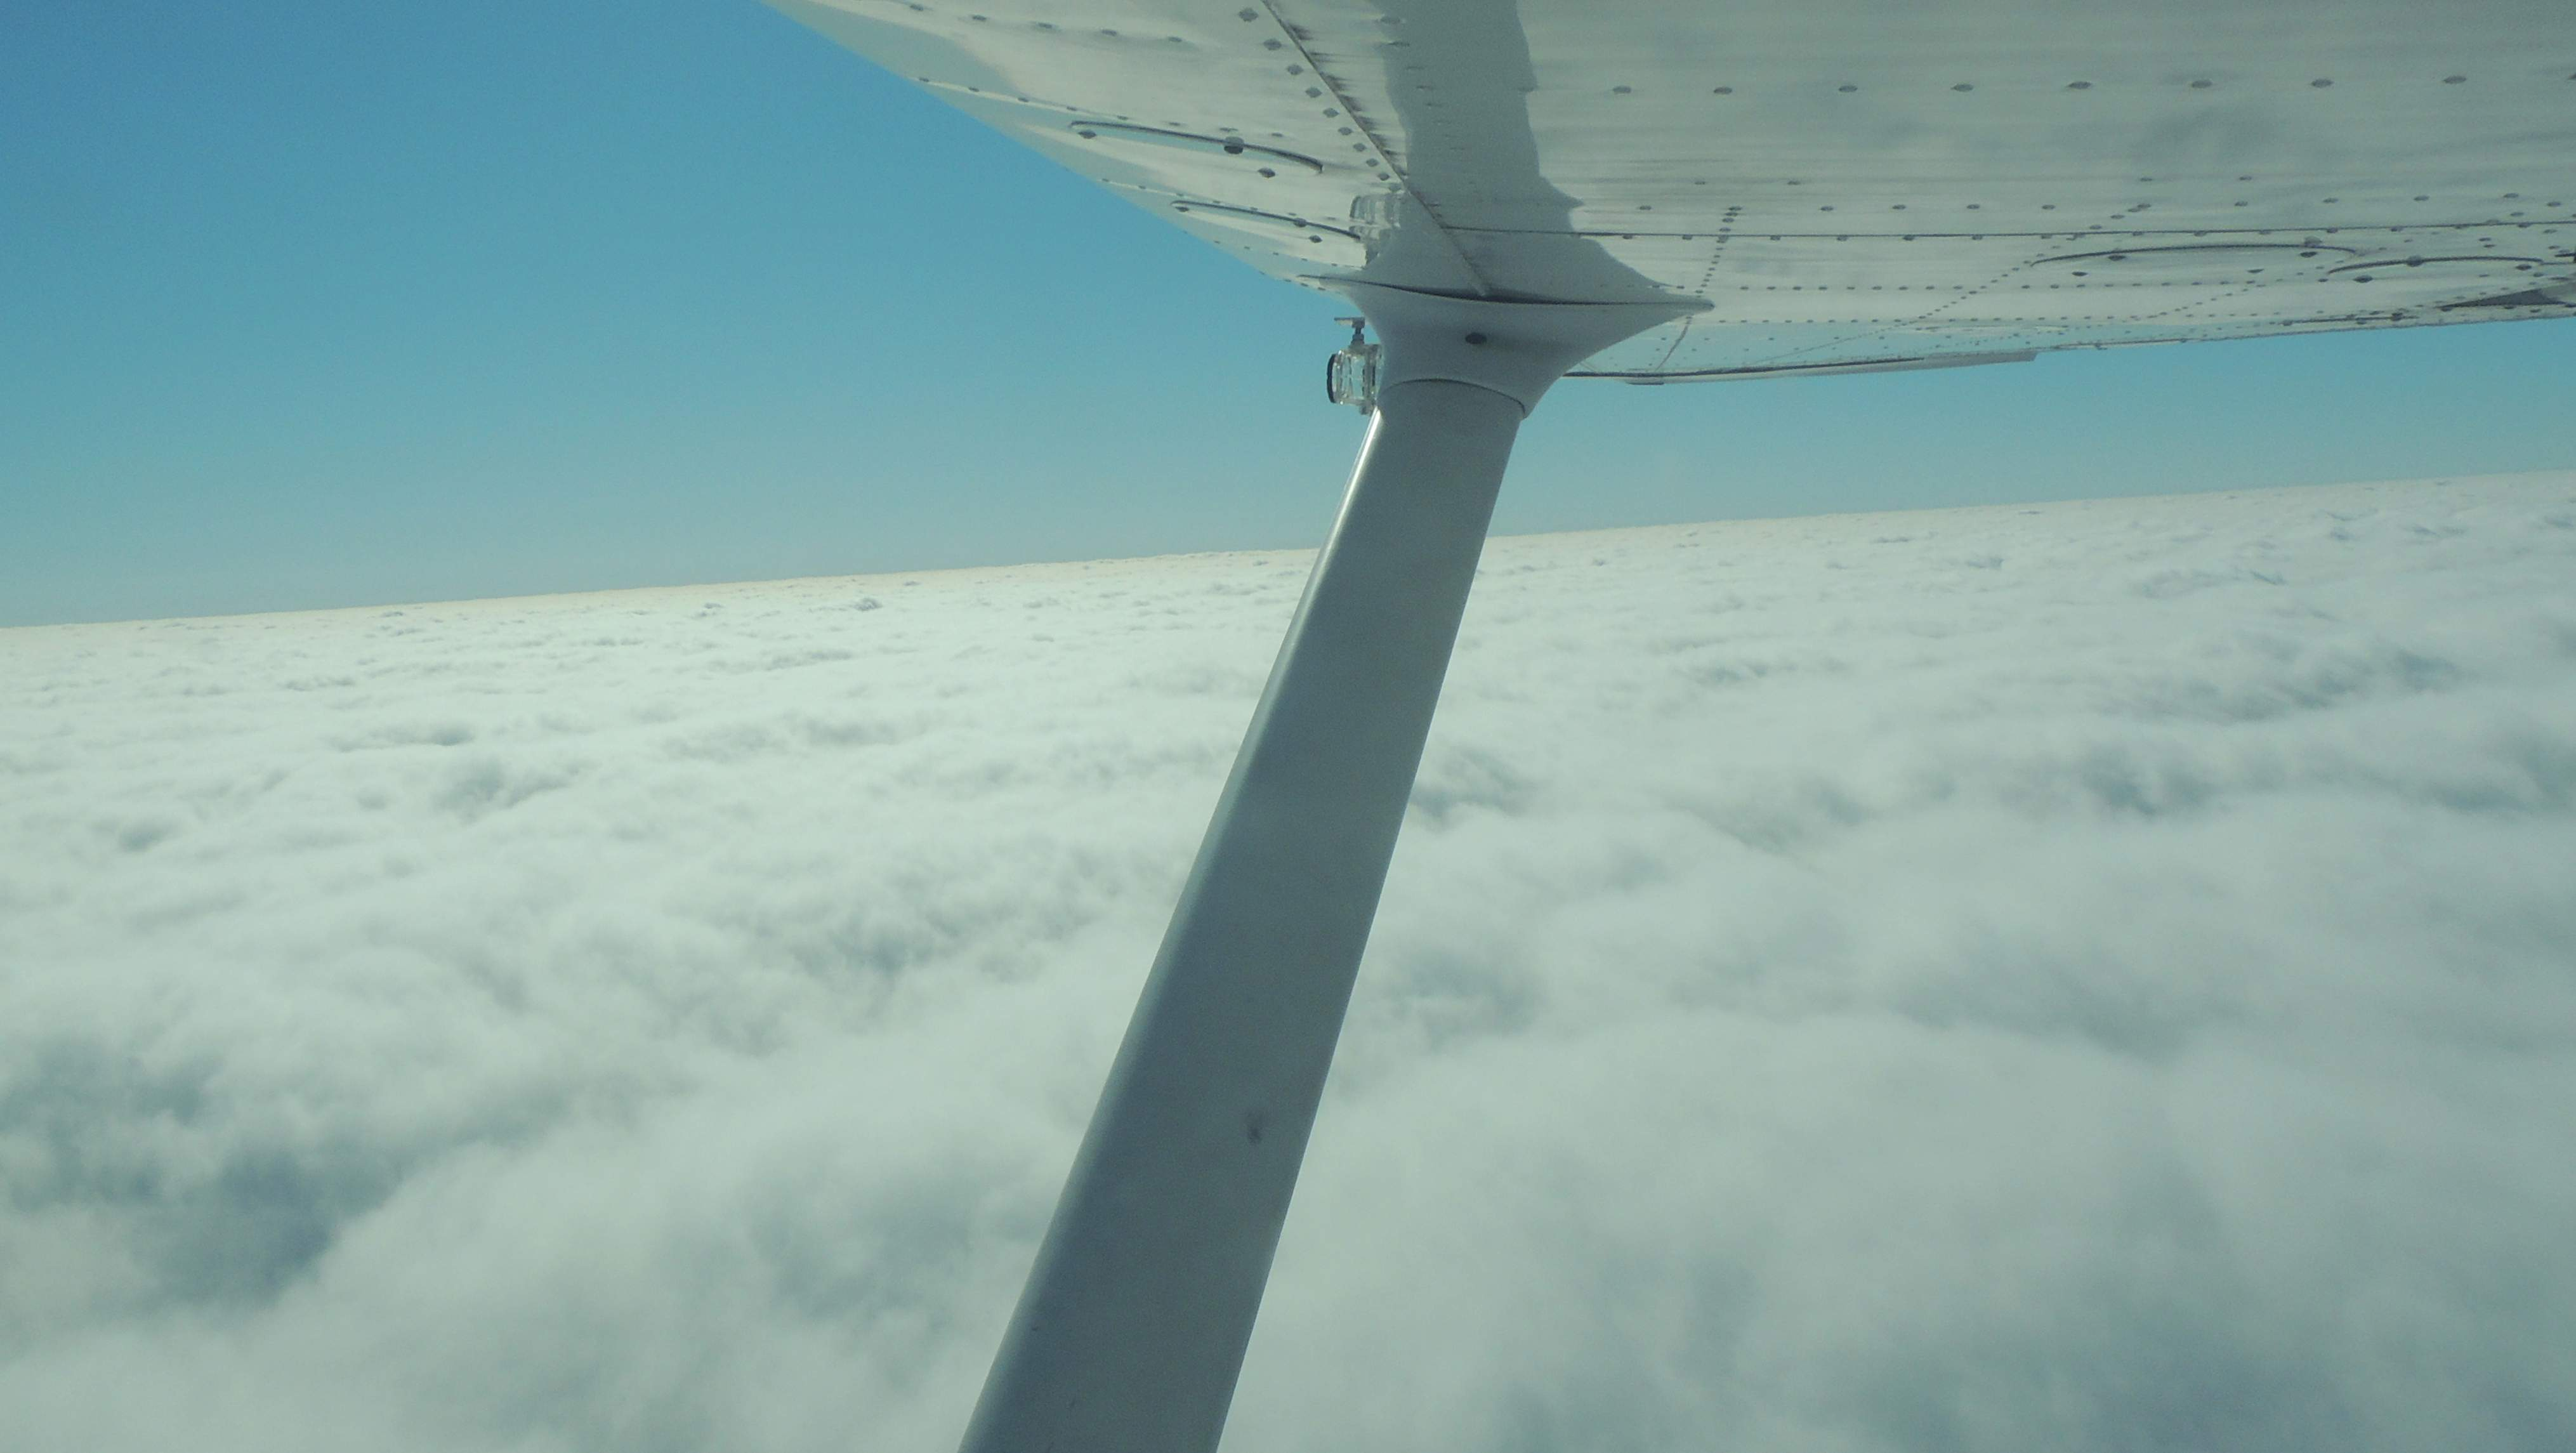 Climbing up and out of the clouds after departing Wheeling WVa